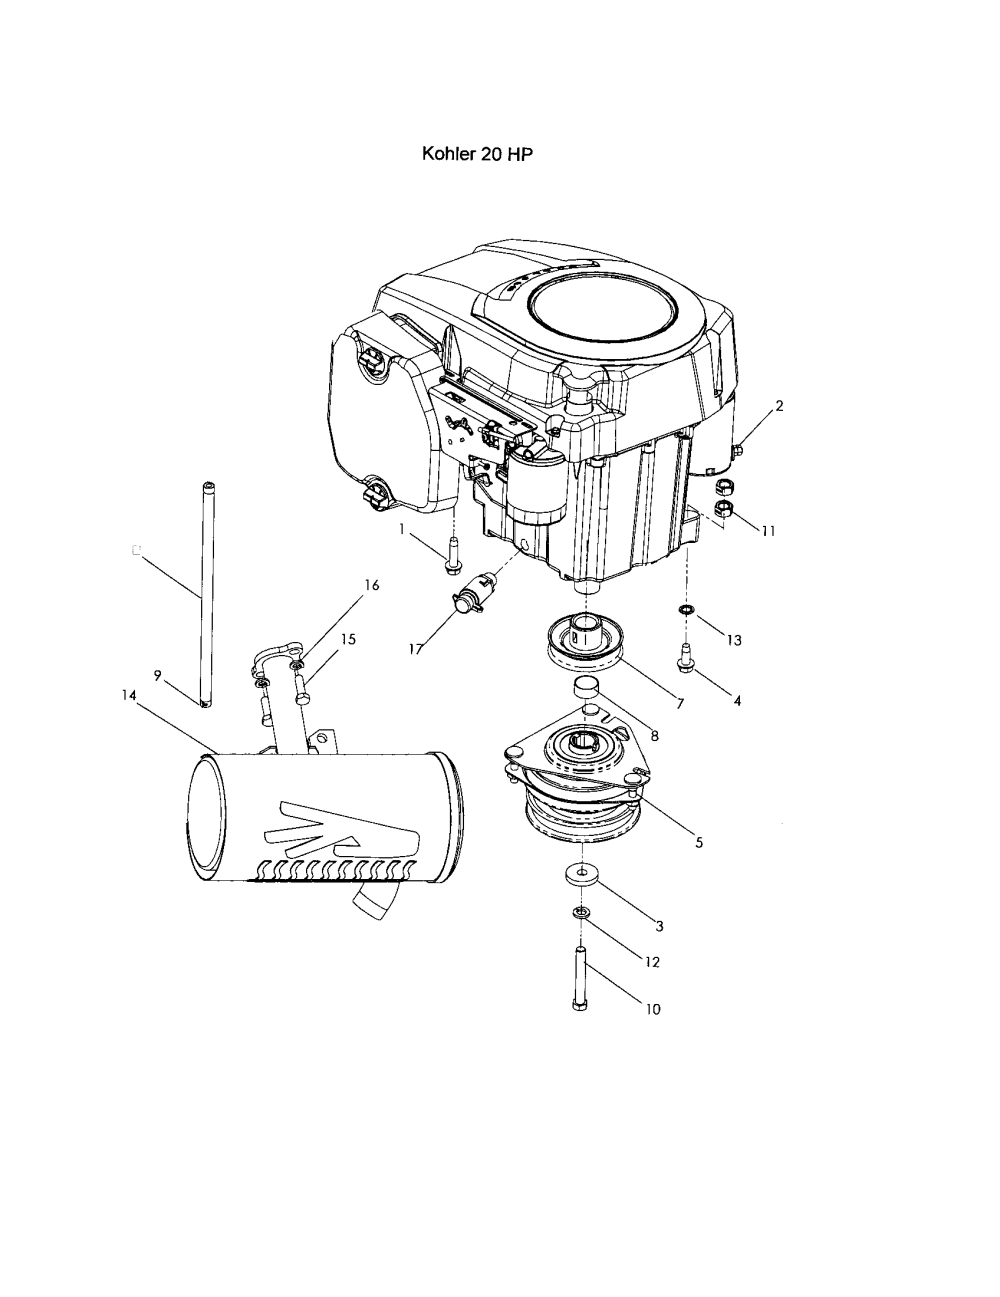 medium resolution of husqvarna z4218 968999281 engine kohler 20 hp diagram